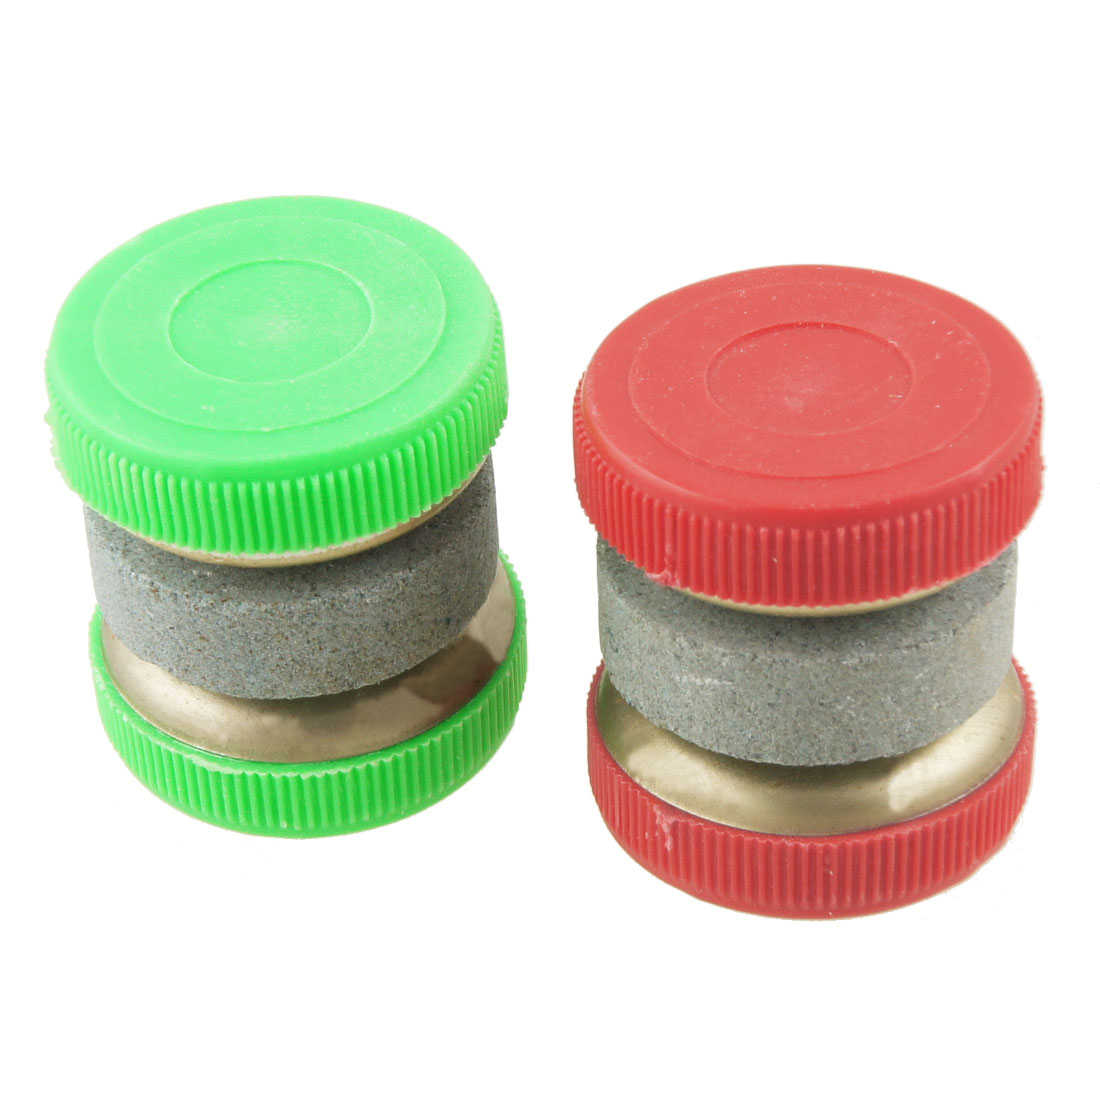 Unique Bargains 2 Pcs Red Green Grit Lapped Whetstone Abrader Sharpener Tool